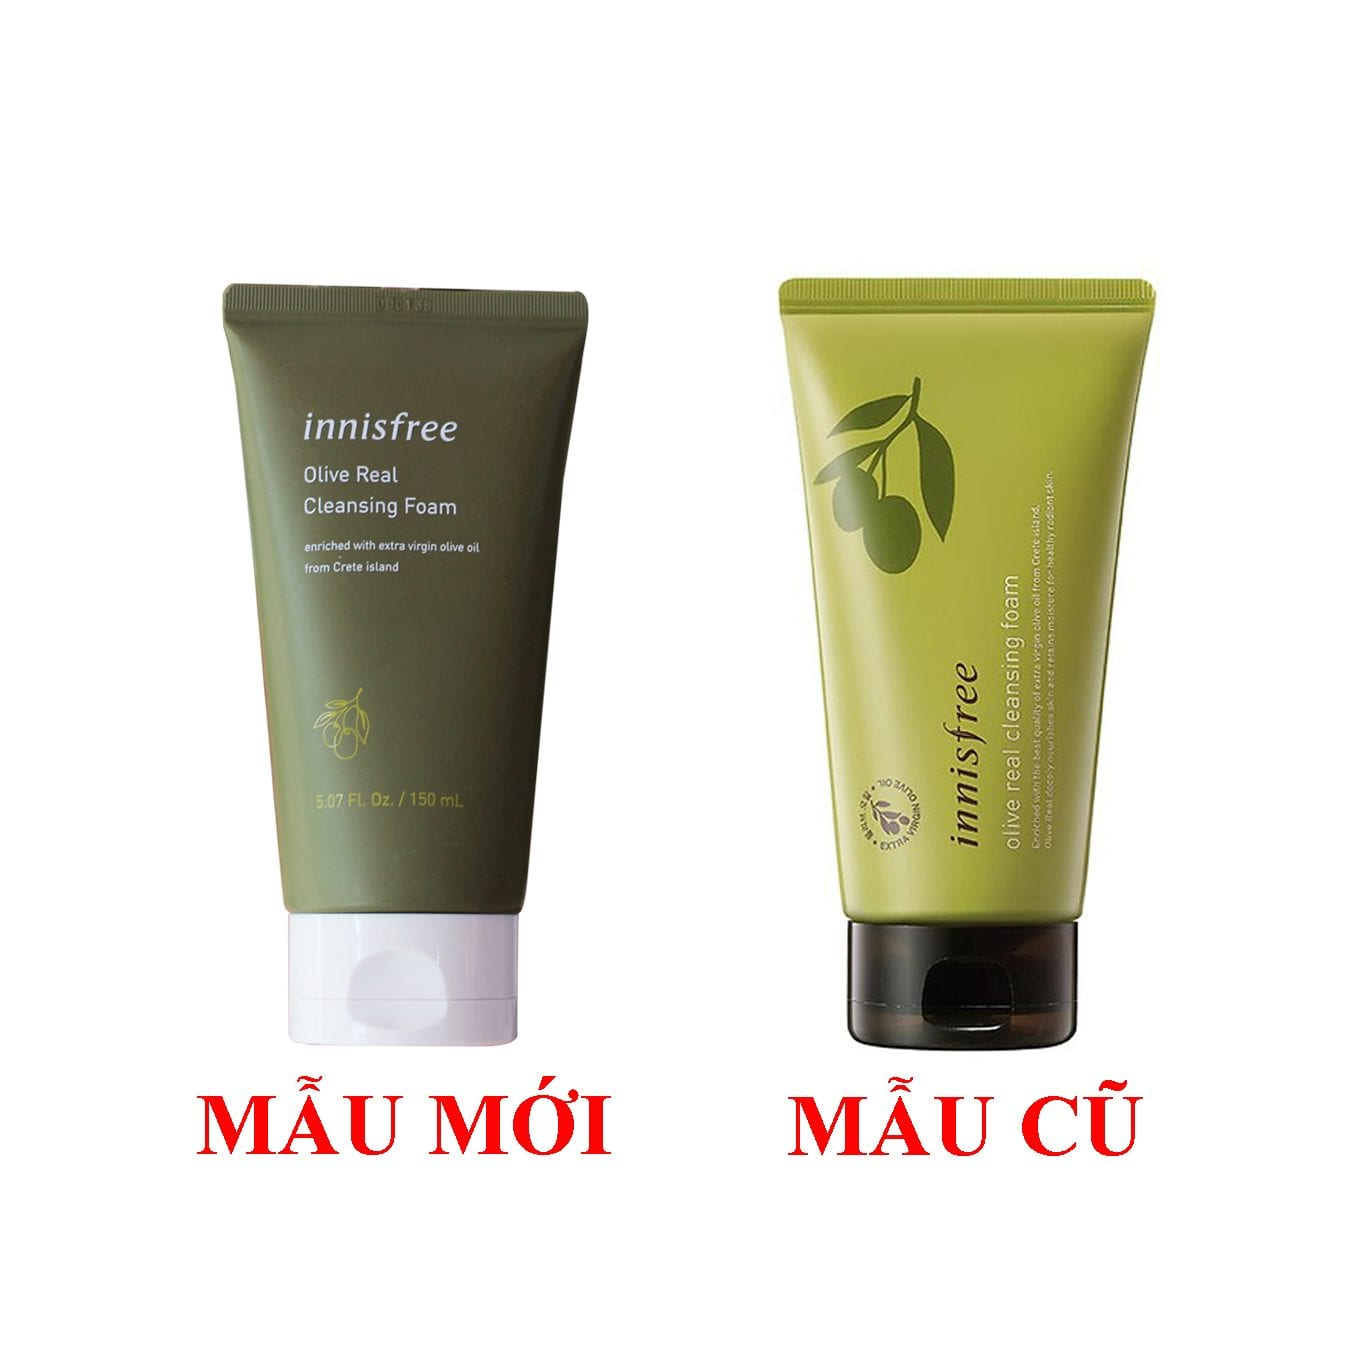 Innisfree Olive Real Cleansing Foam 2